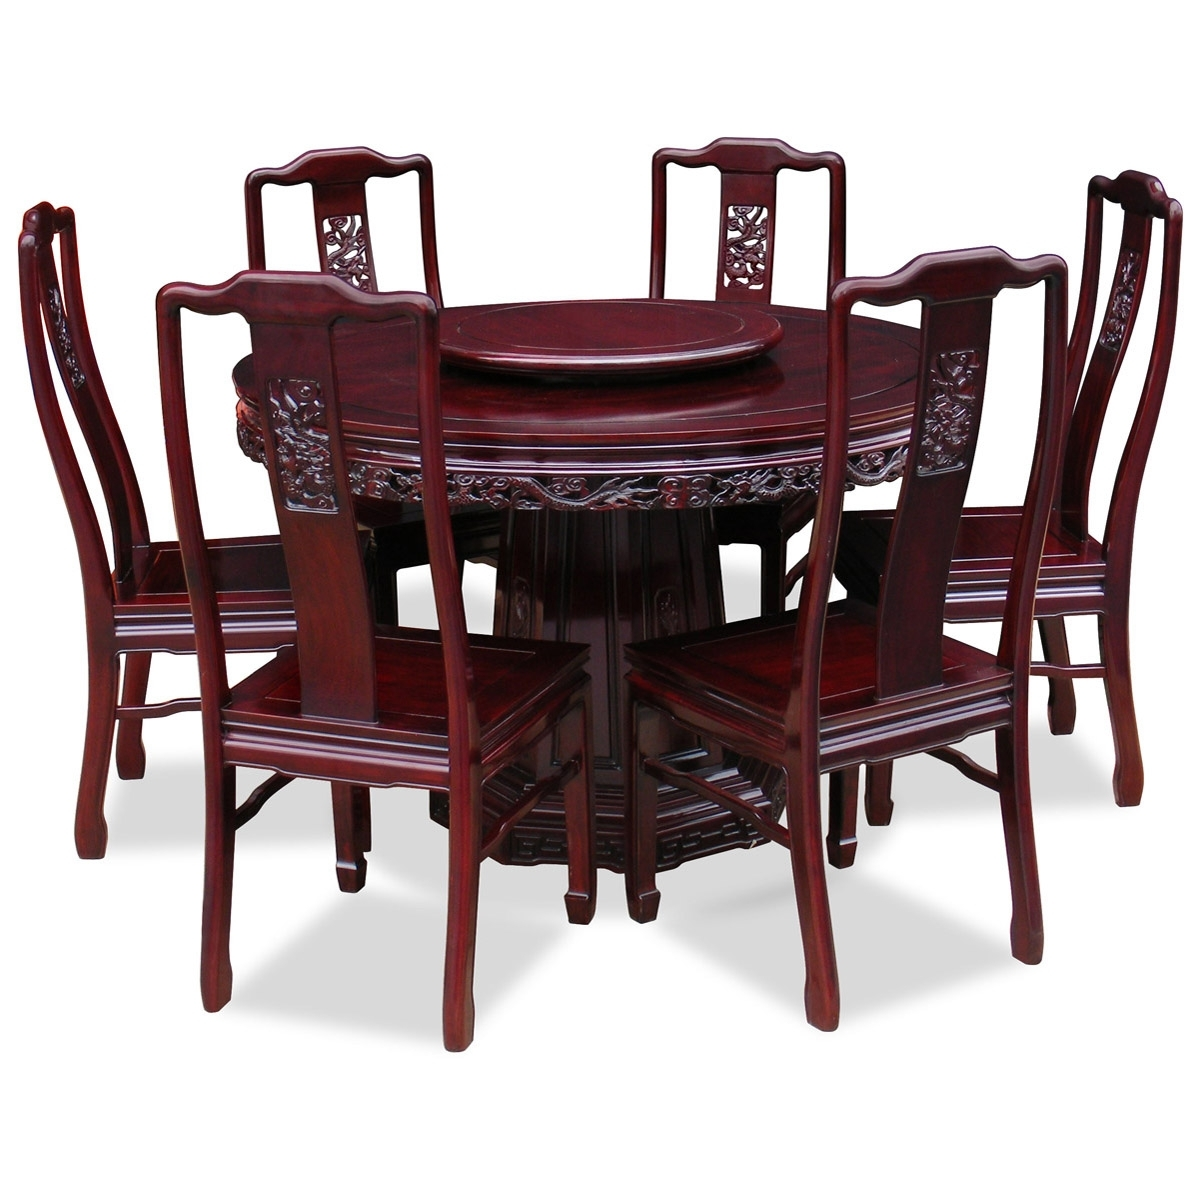 Asian Dining Tables Throughout Most Current 48In Rosewood Dragon Design Round Dining Table With 6 Chairs (View 21 of 25)